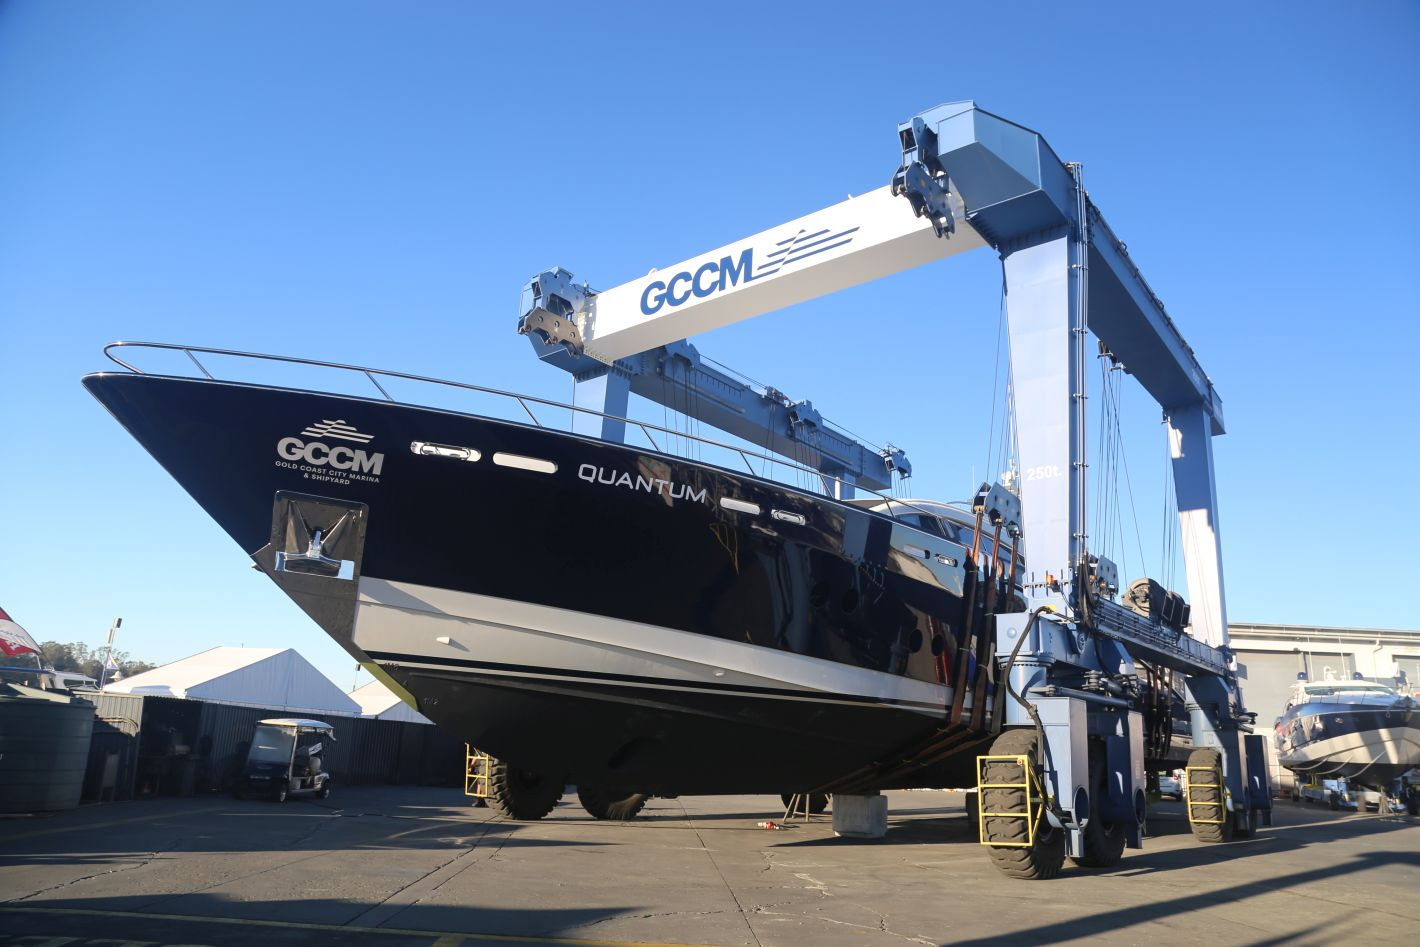 GCCM Seal Superyachts Australia Boatlift